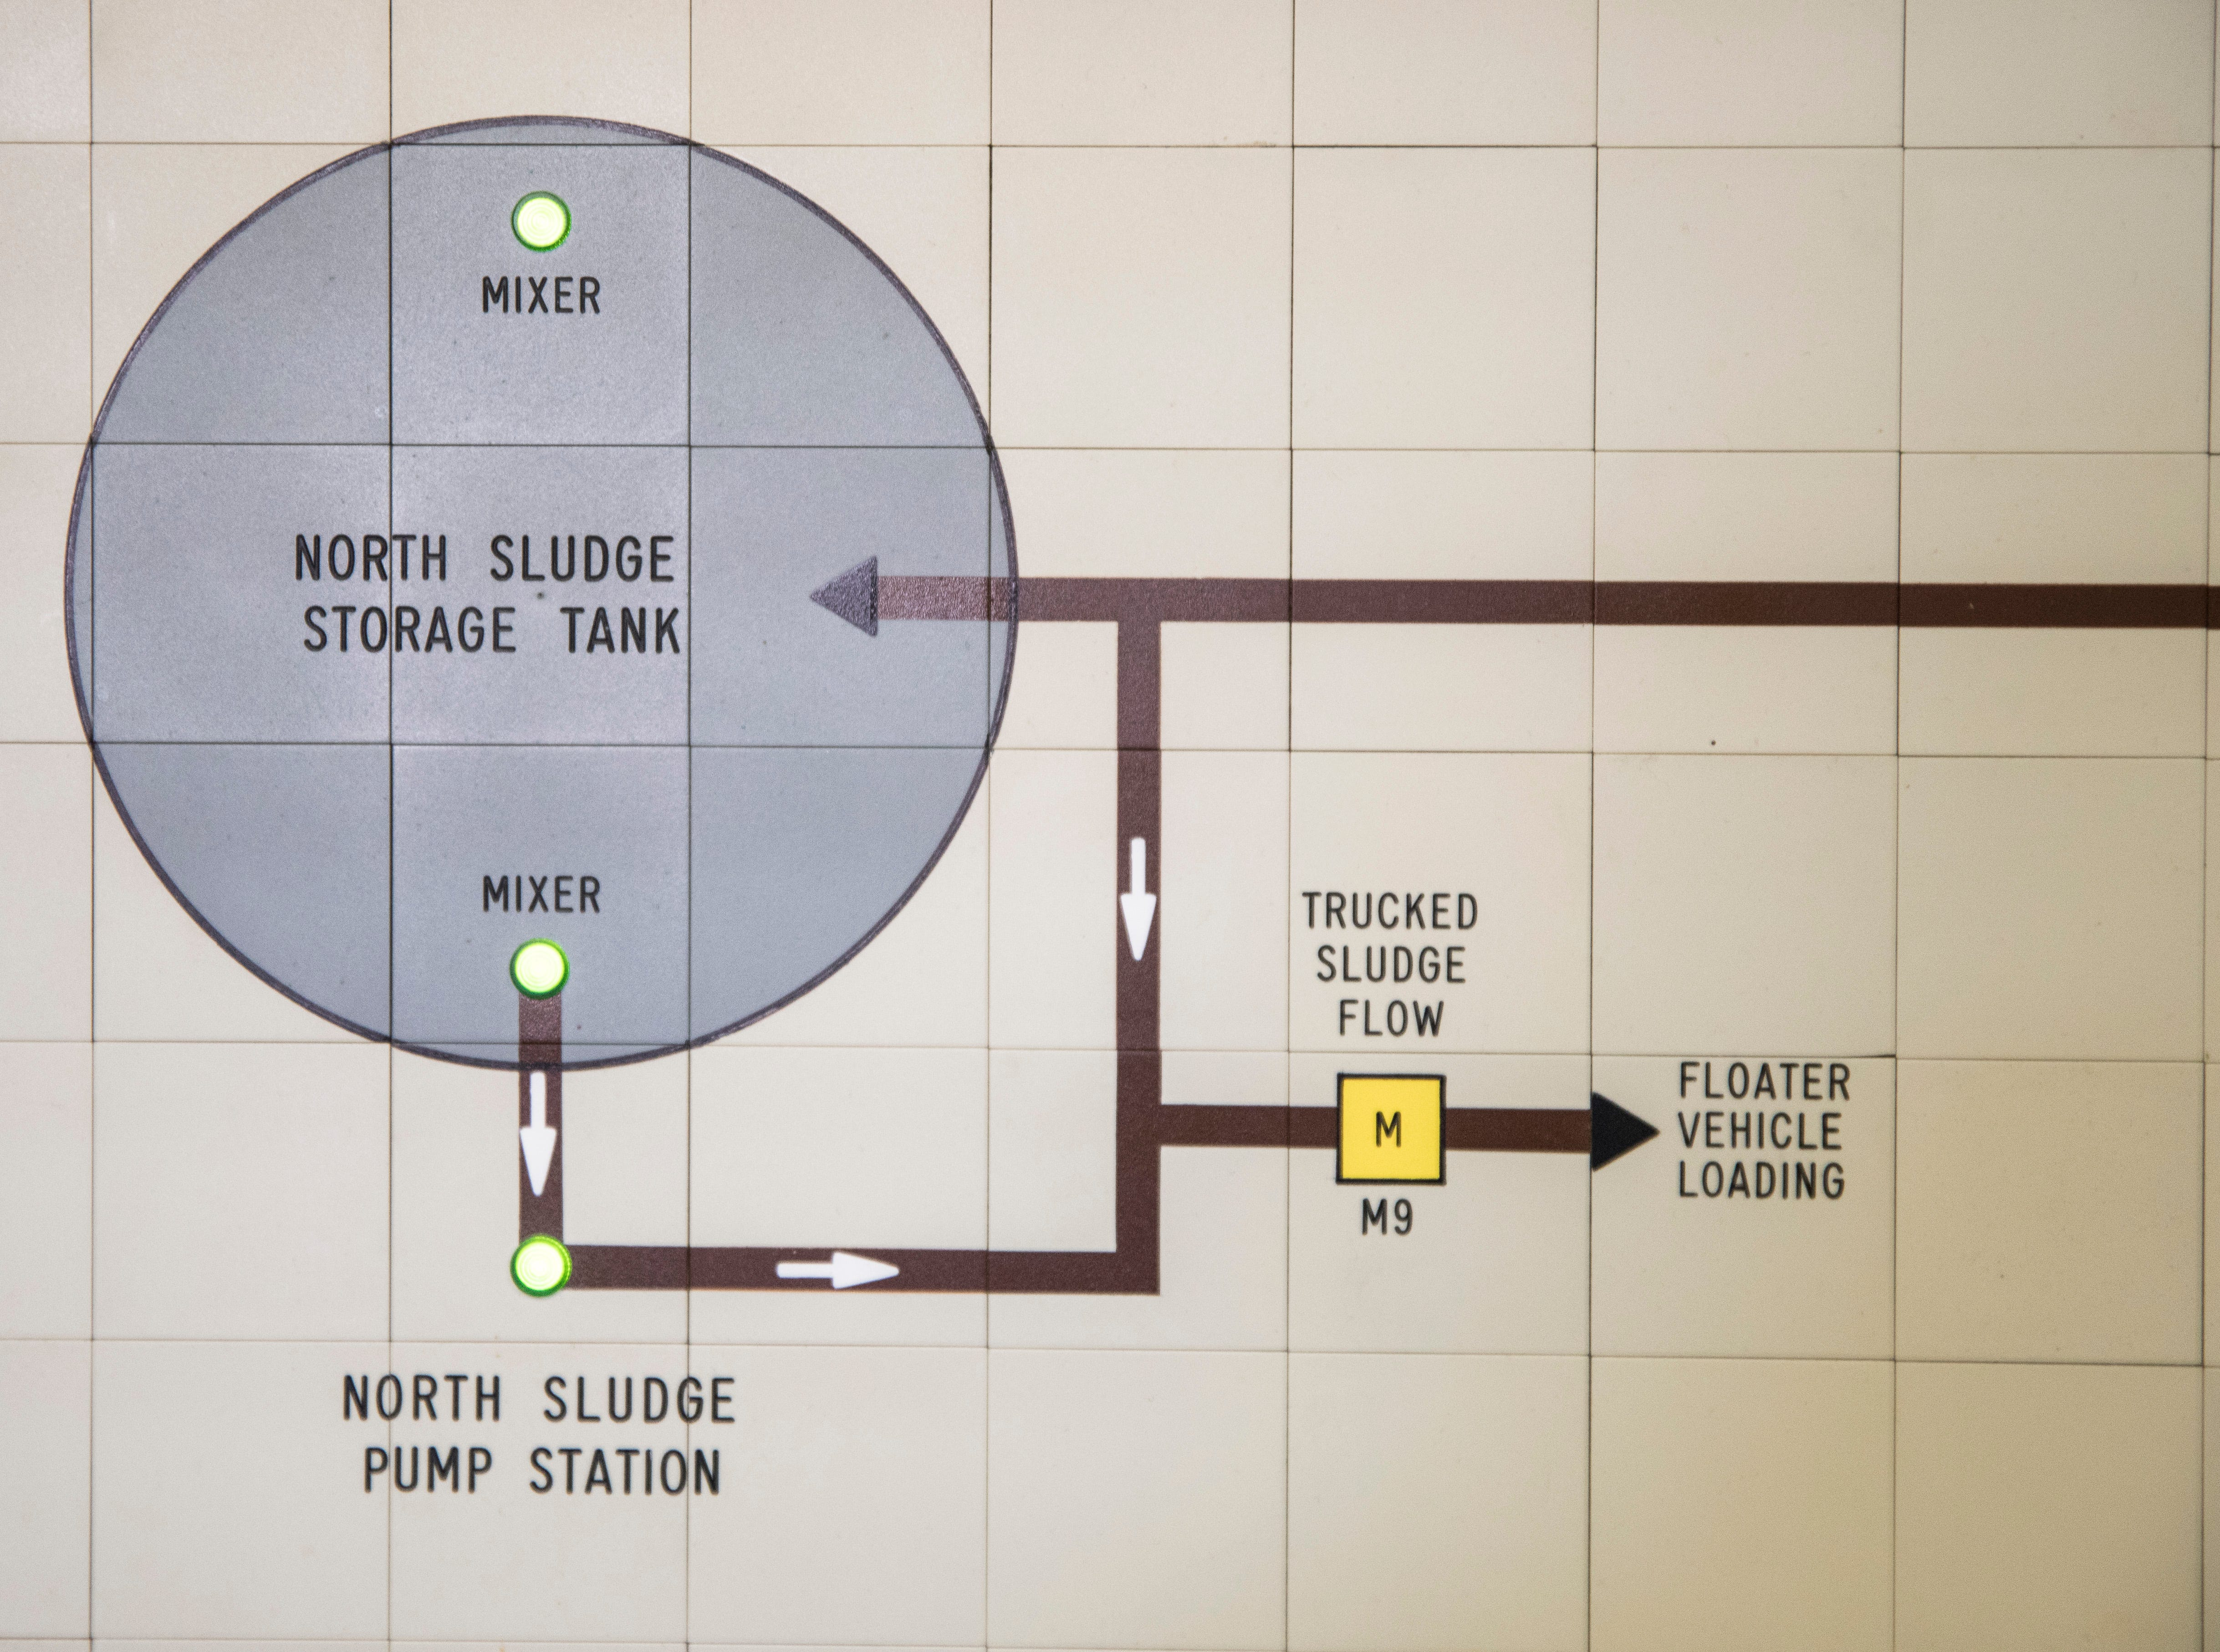 The SCADA (automatic control) system and the heater system lights up with different colors to communicate with staff when something needs attention. When a contractor came to evaluate the system the previous year, they realized the state of the facility.